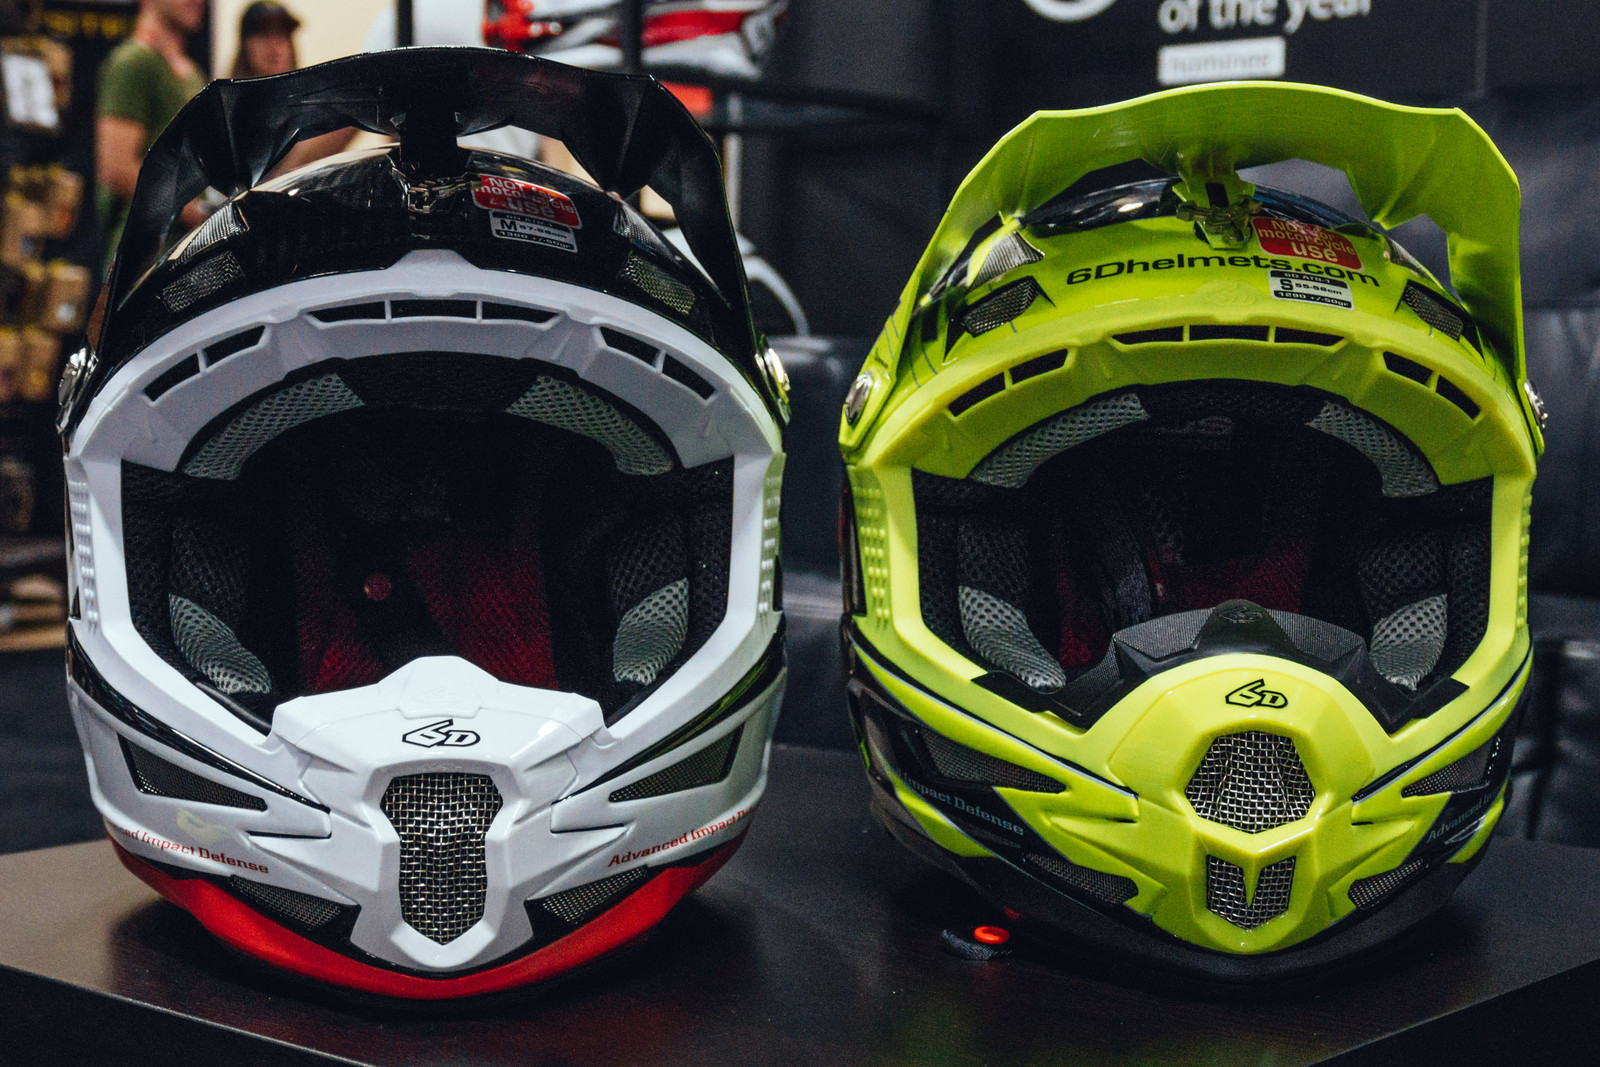 6D ATB-1 Full Face Update and Fresh Designs - INTERBIKE - 2017 Mountain Bike Apparel and Protective Gear - Mountain Biking Pictures - Vital MTB